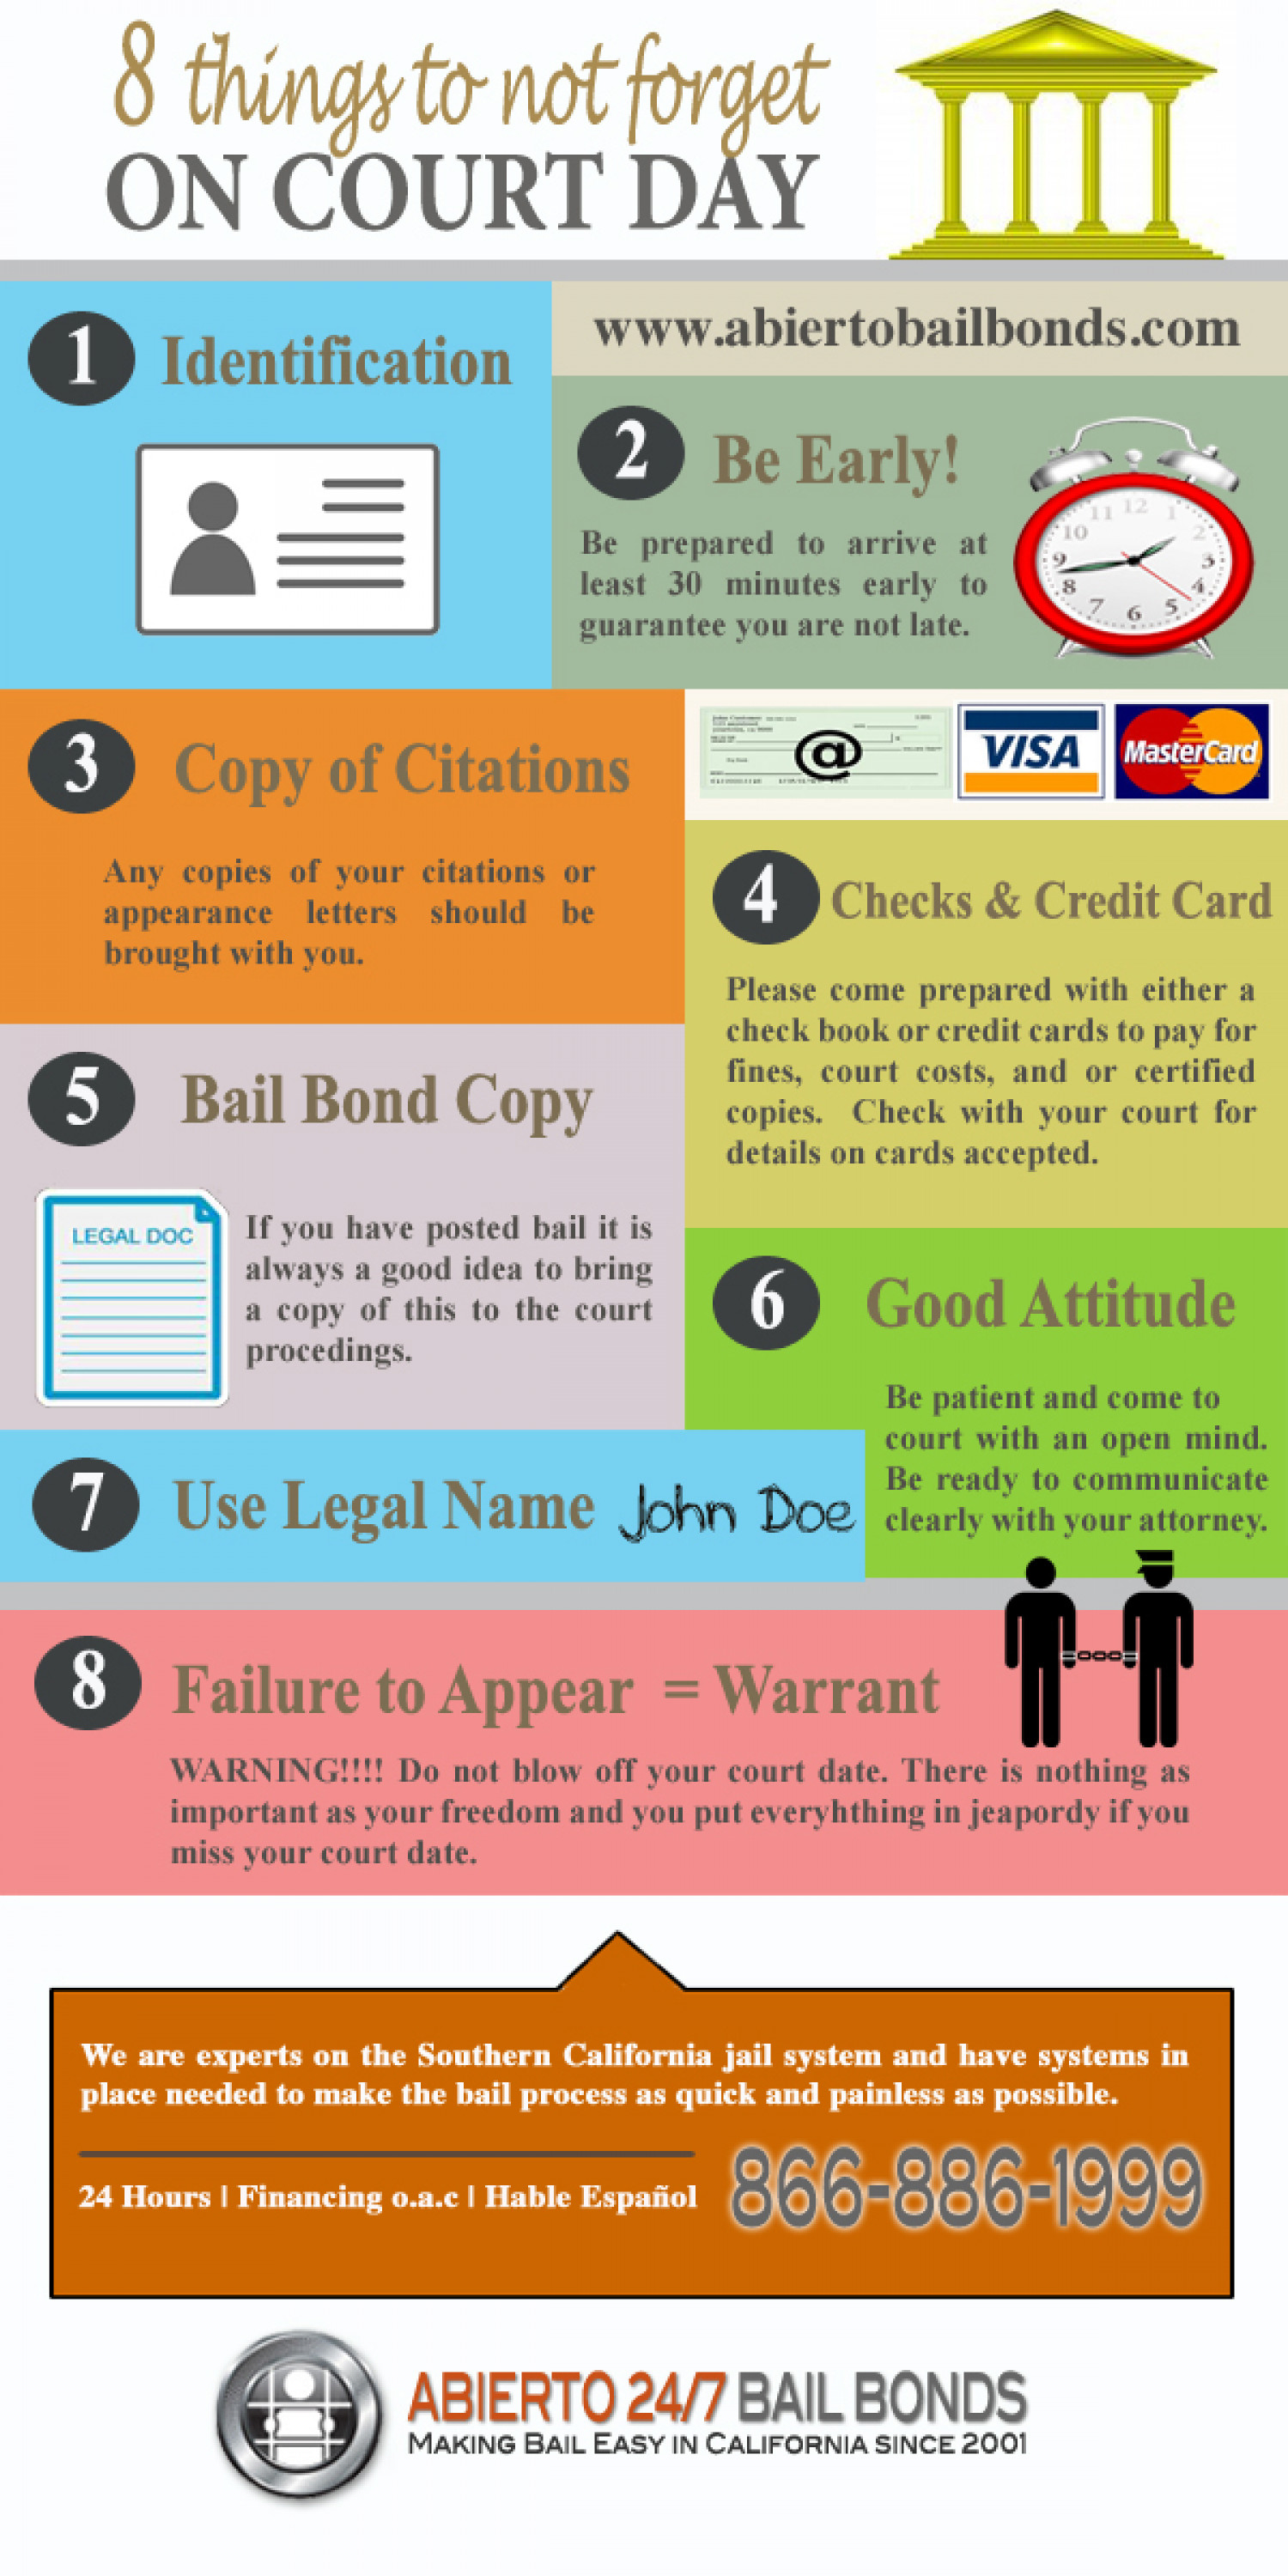 8 Things to Not Forget on Court Day Infographic